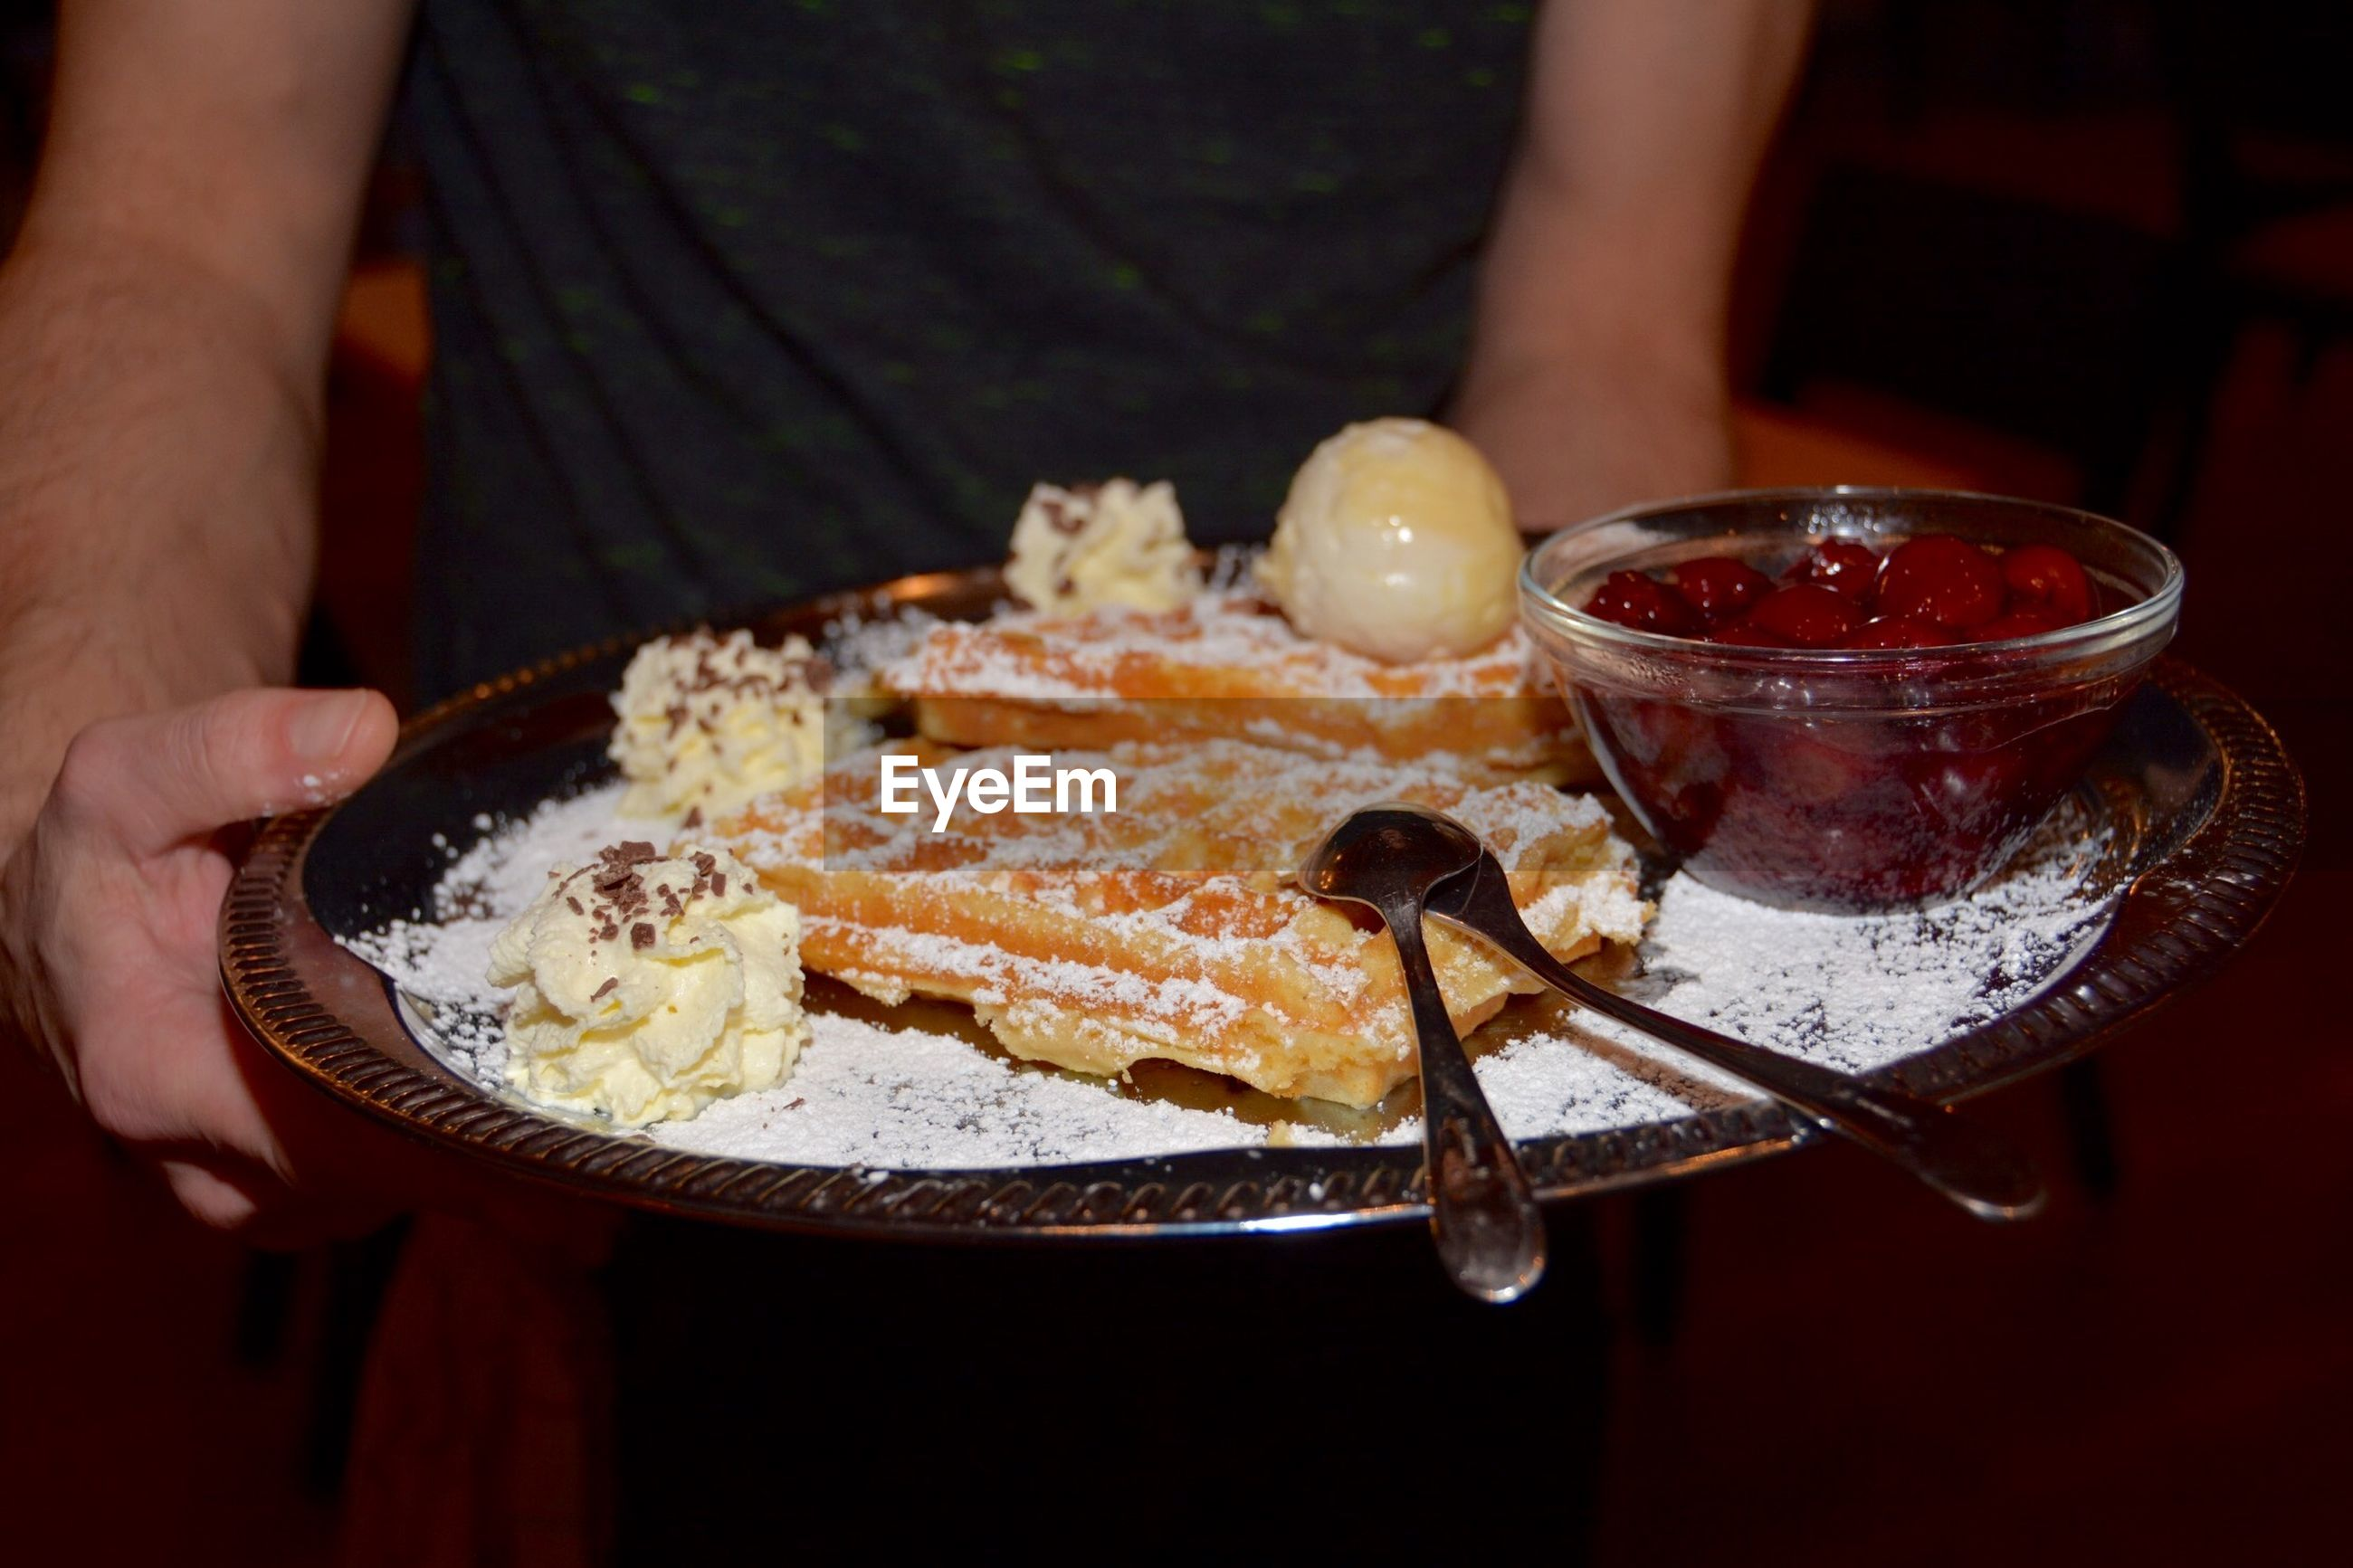 Midsection of man holding waffle with ice cream and cranberry sauce in plate